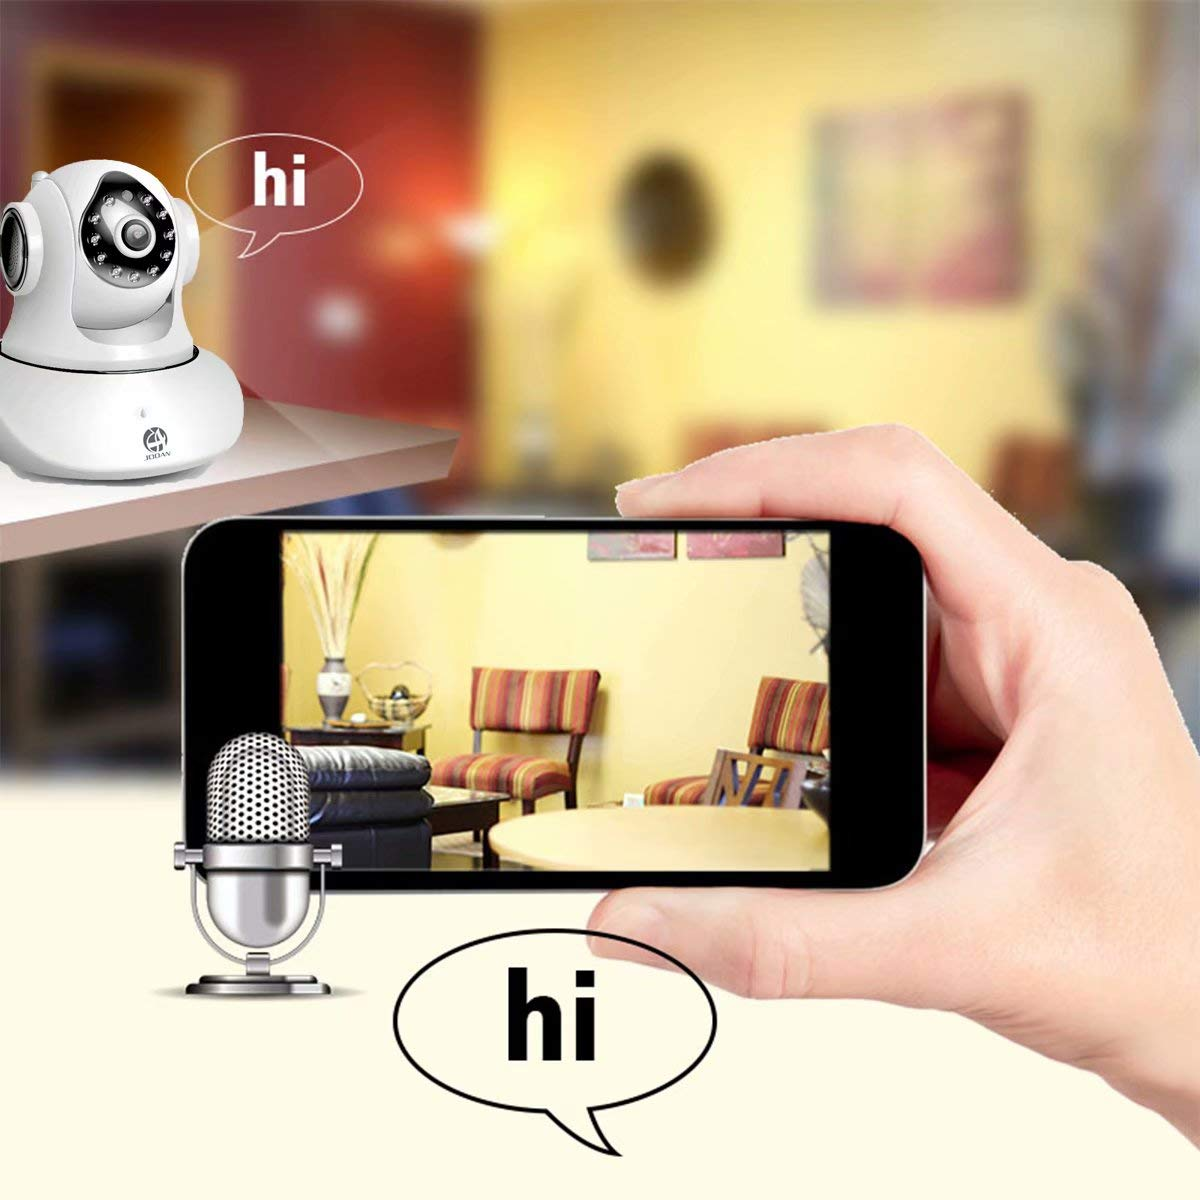 JOOAN WiFi Security Camera Wireless IP Camera with Two-Way Audio Night Vision 720P Camera for Pet Baby Monitor by JOOAN (Image #6)